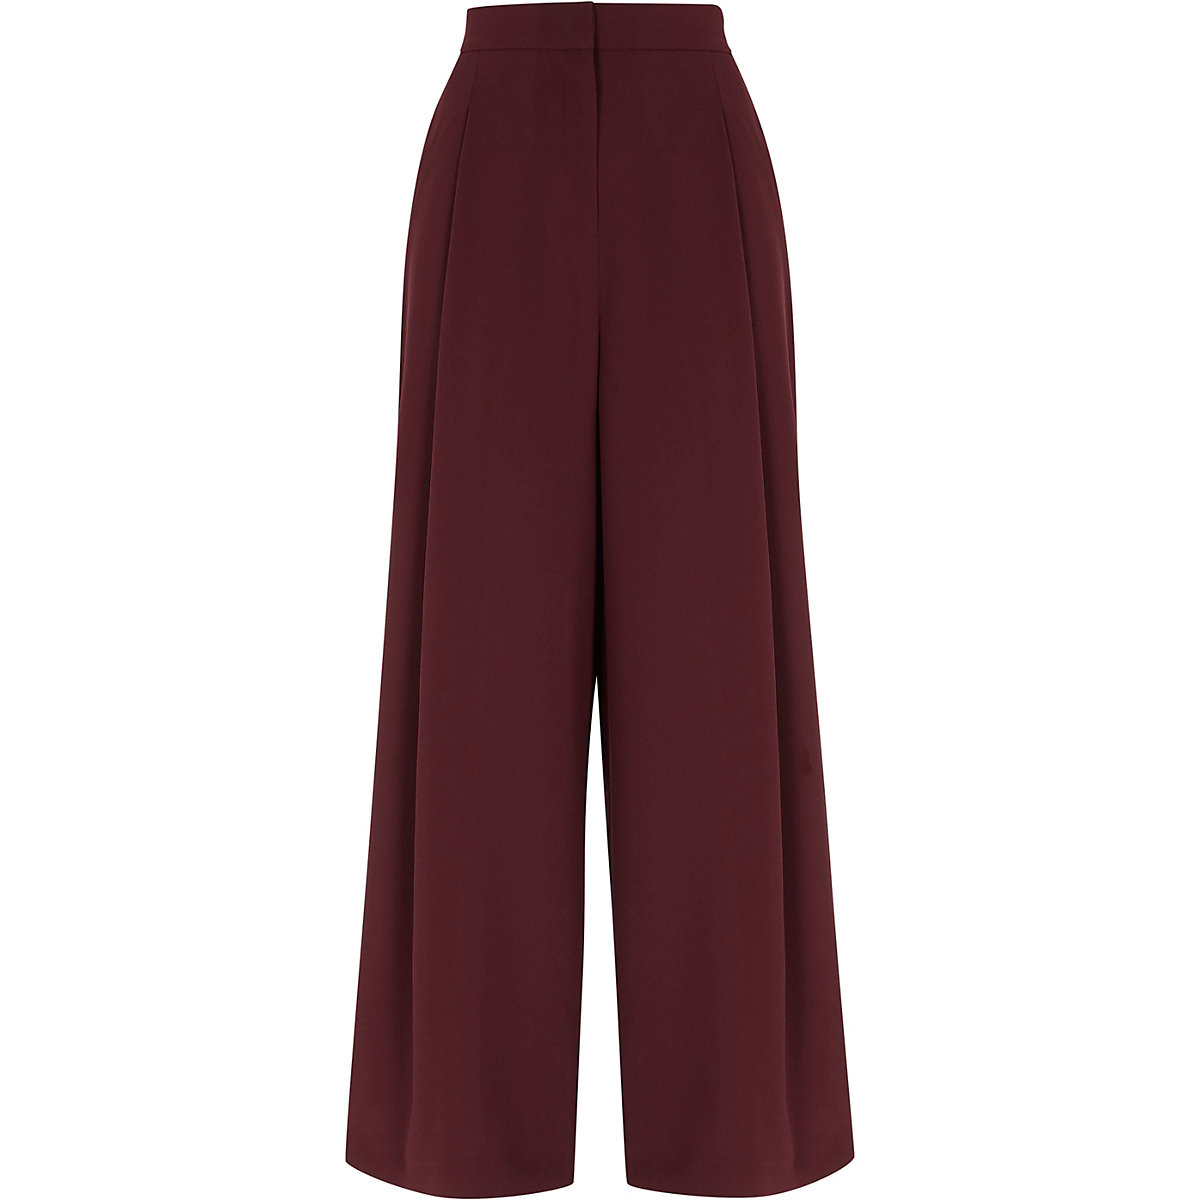 Burgundy side stripe wide leg trousers